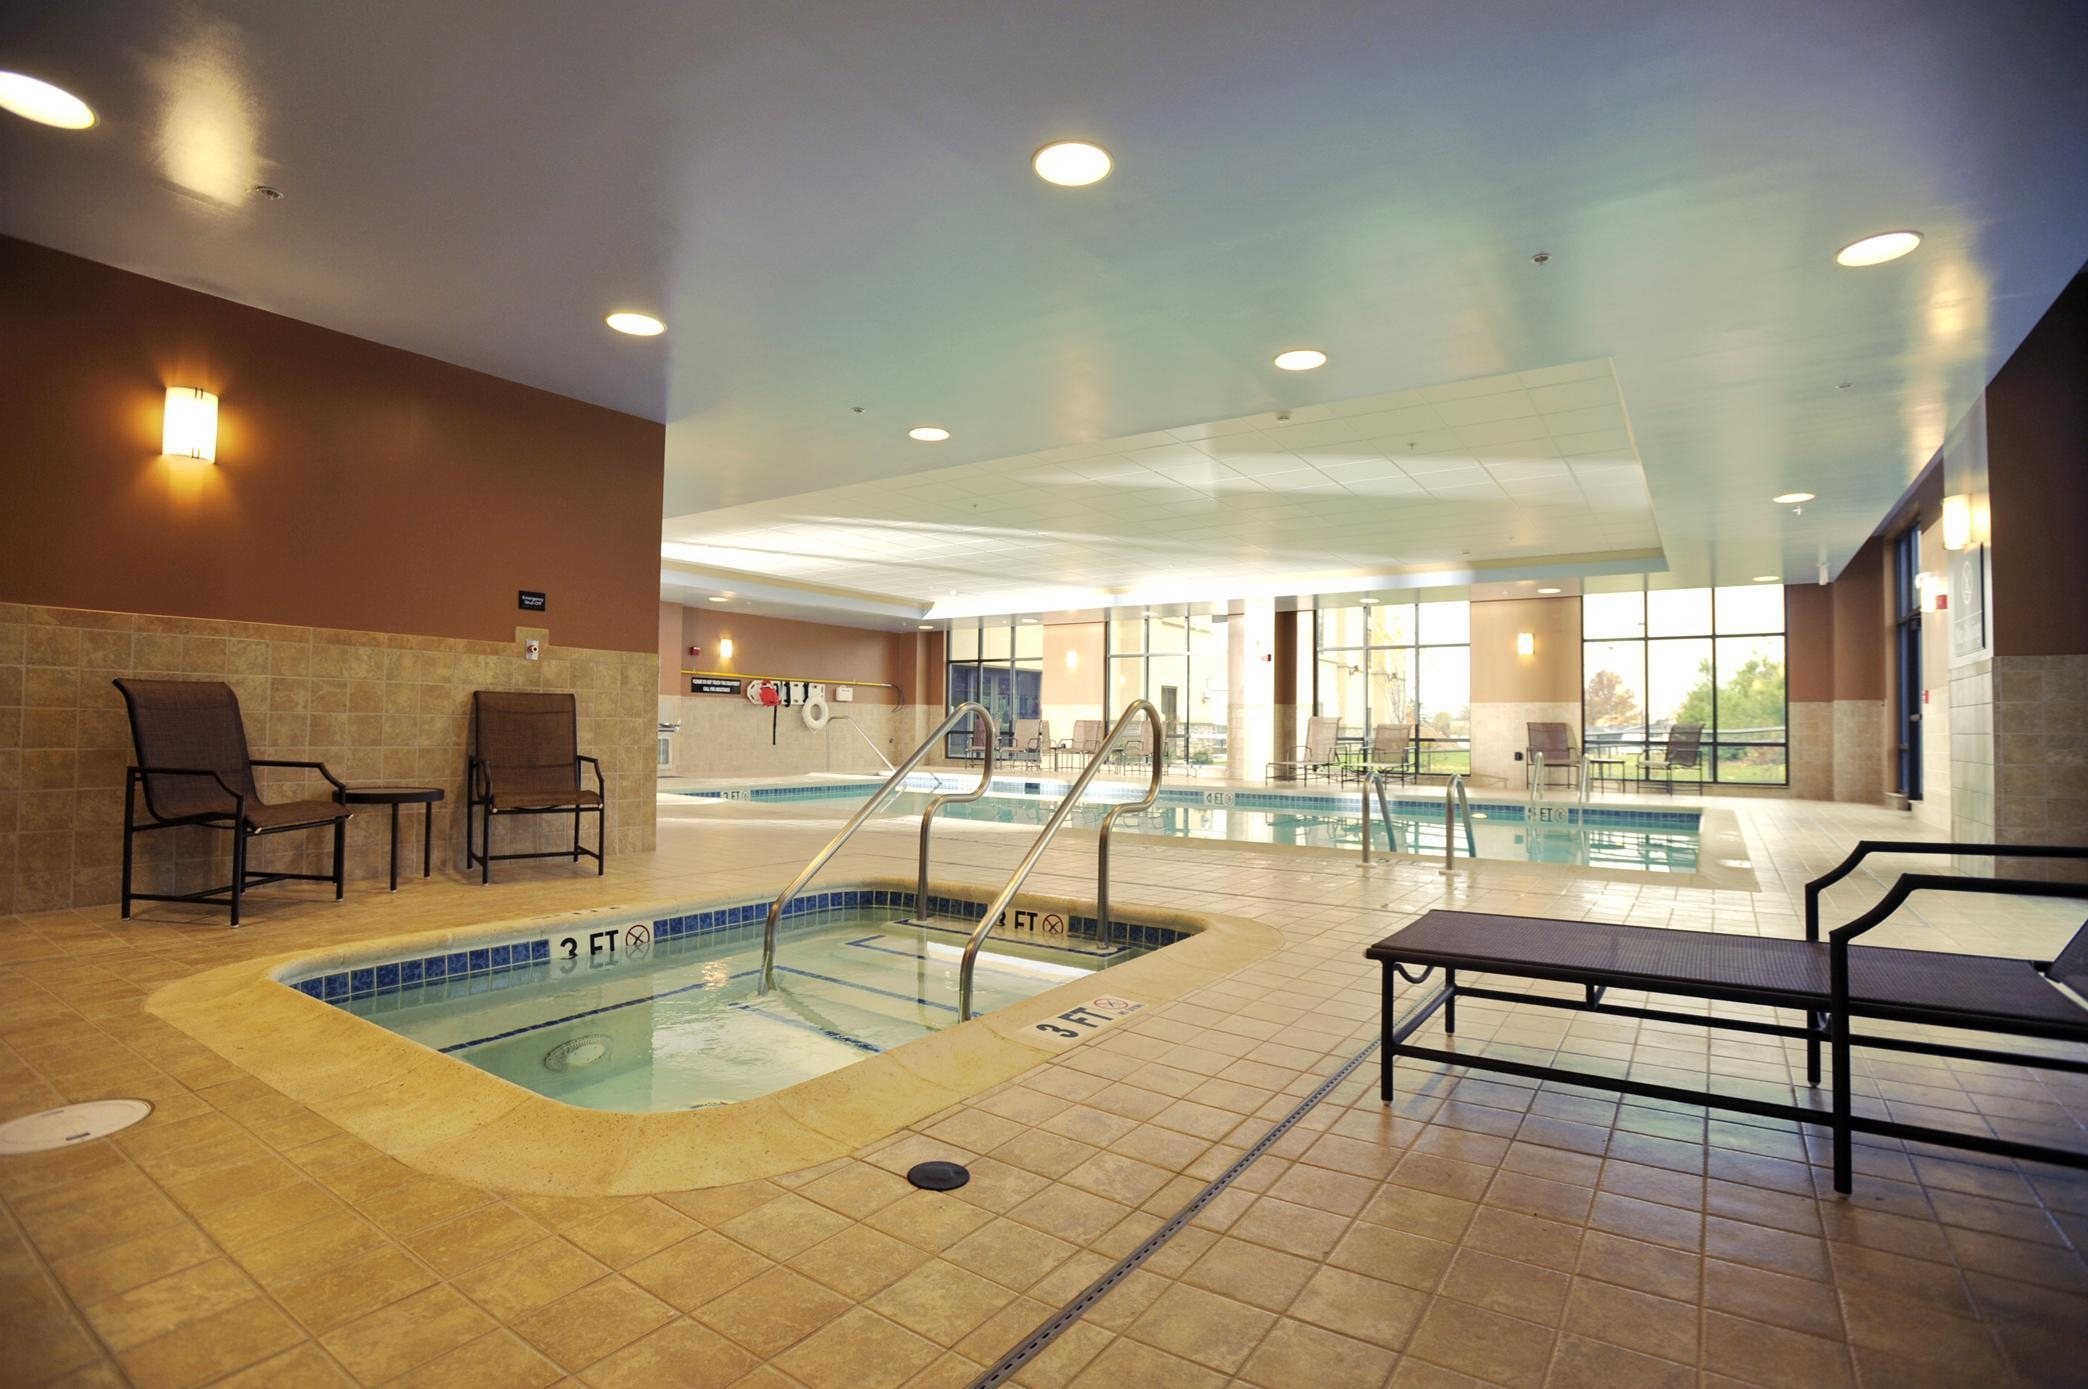 Hampton Inn & Suites Chadds Ford image 3